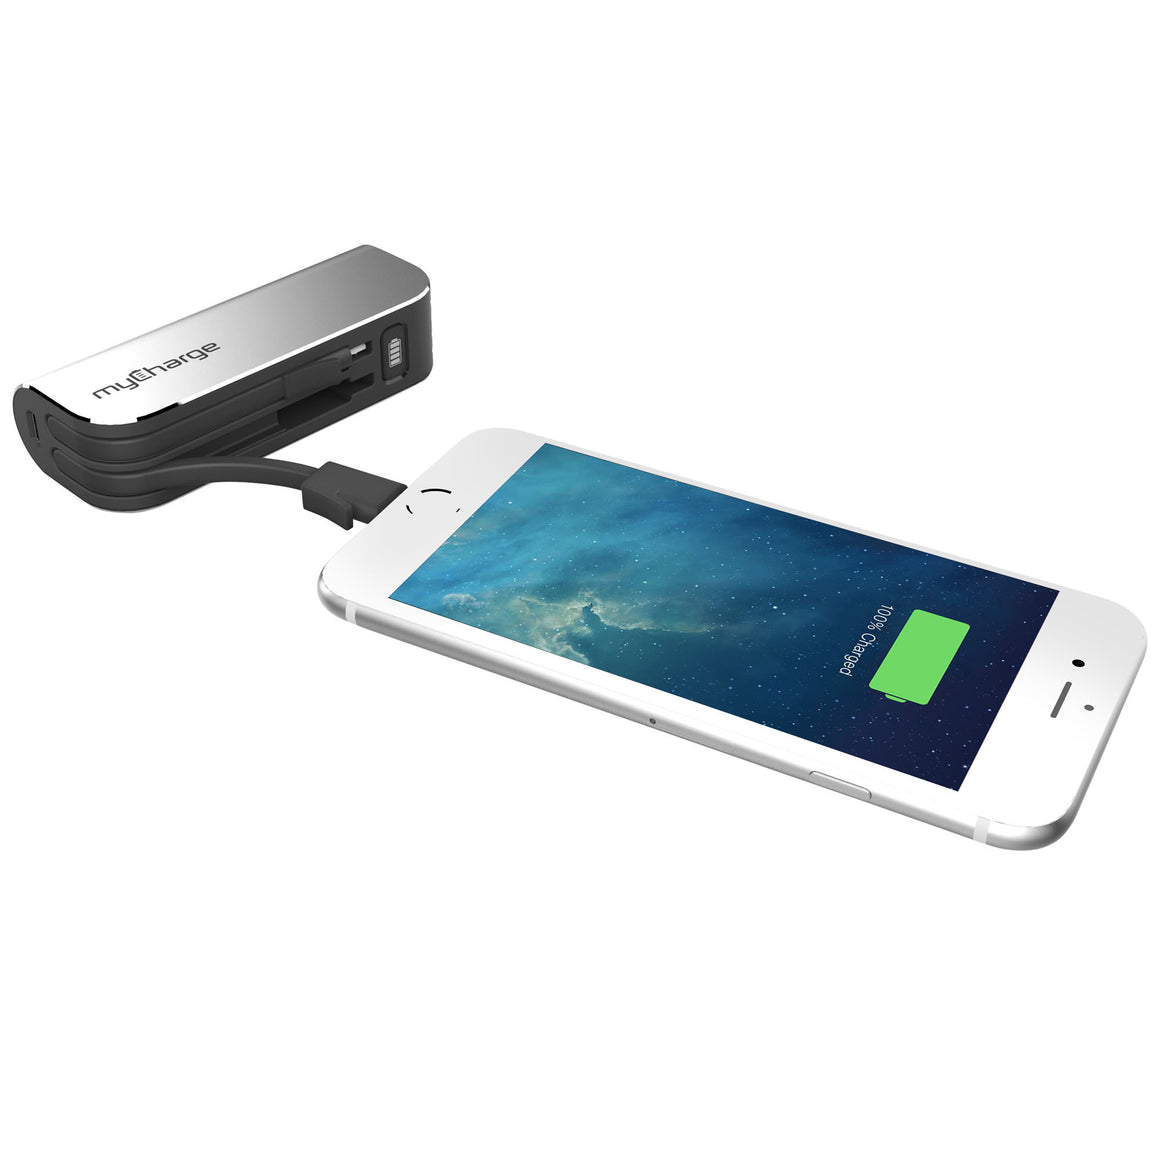 myCharge HubMini 3000mAh portable battery charger devices